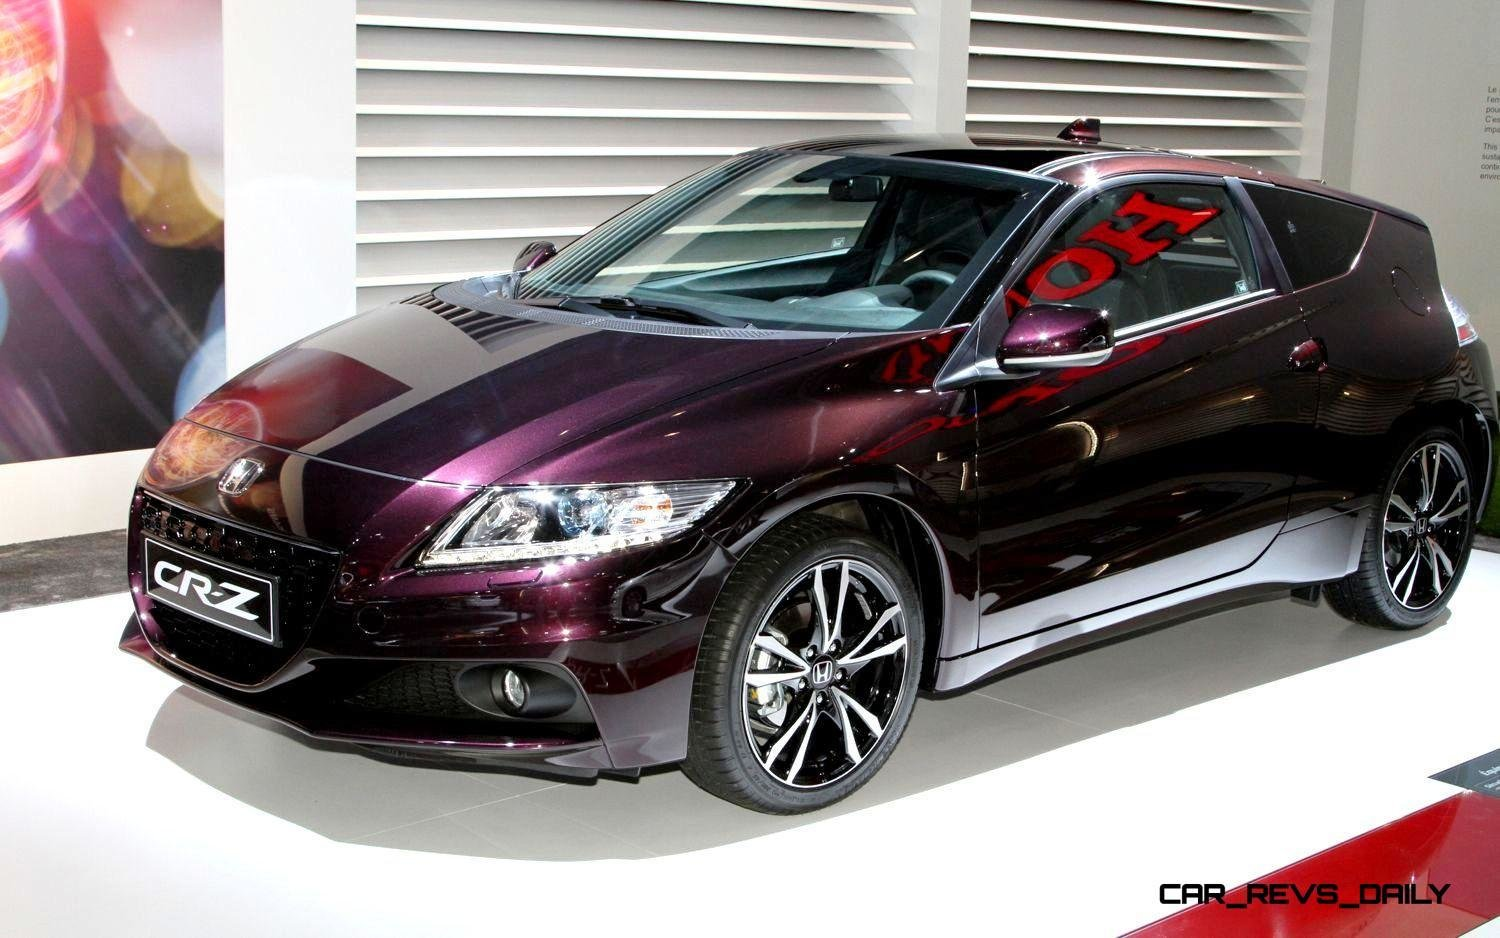 New 2014 Honda Cr Z Buyers Guide Colors Prices Specs And On This Month